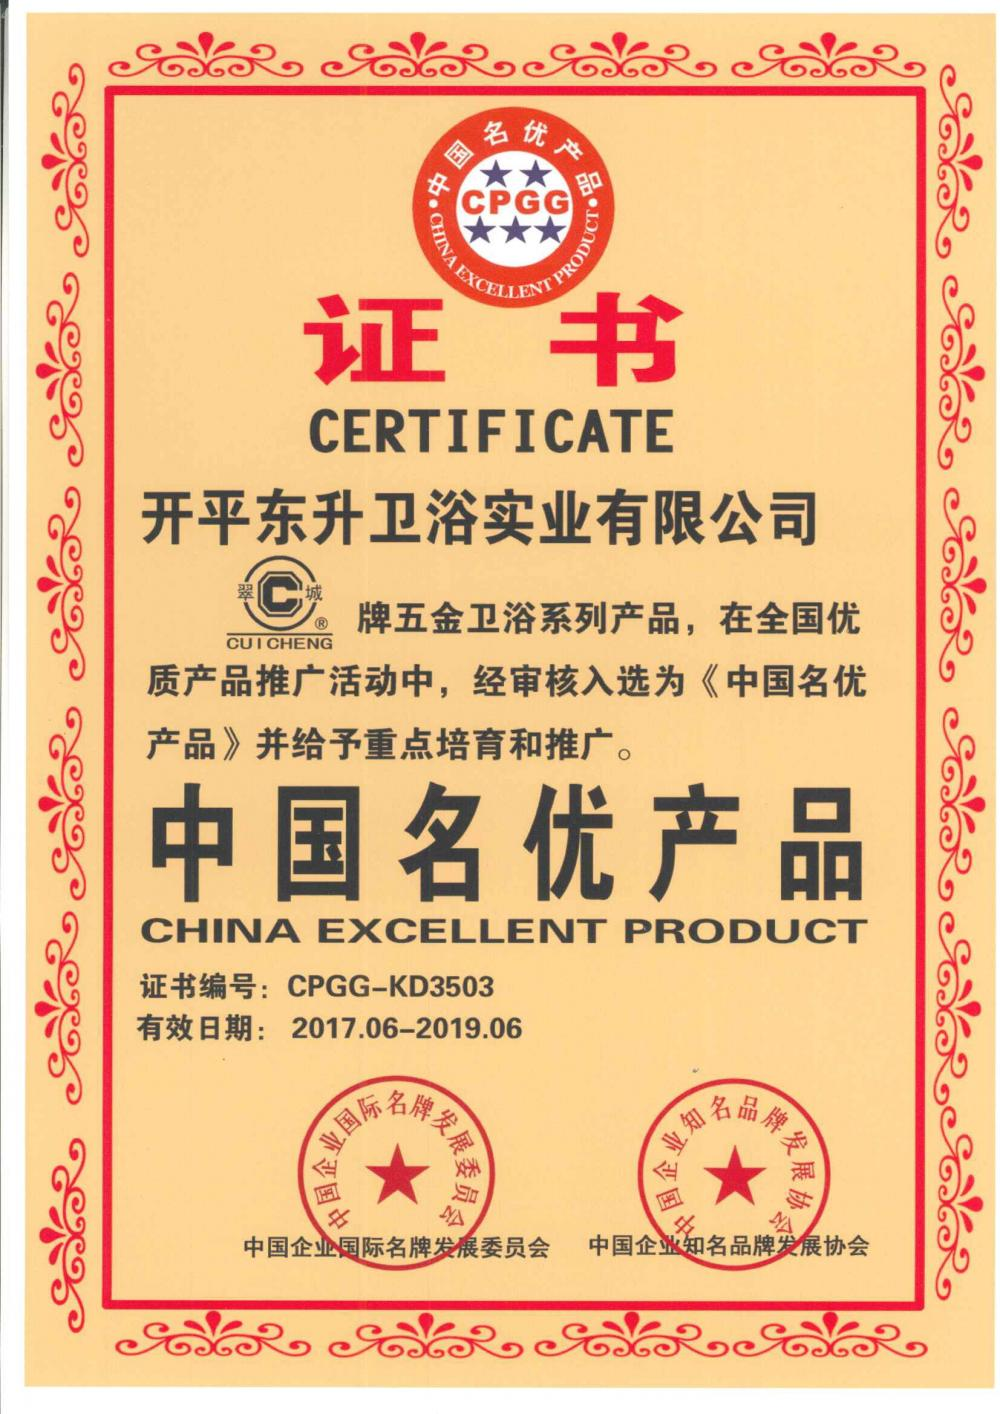 China excellent product